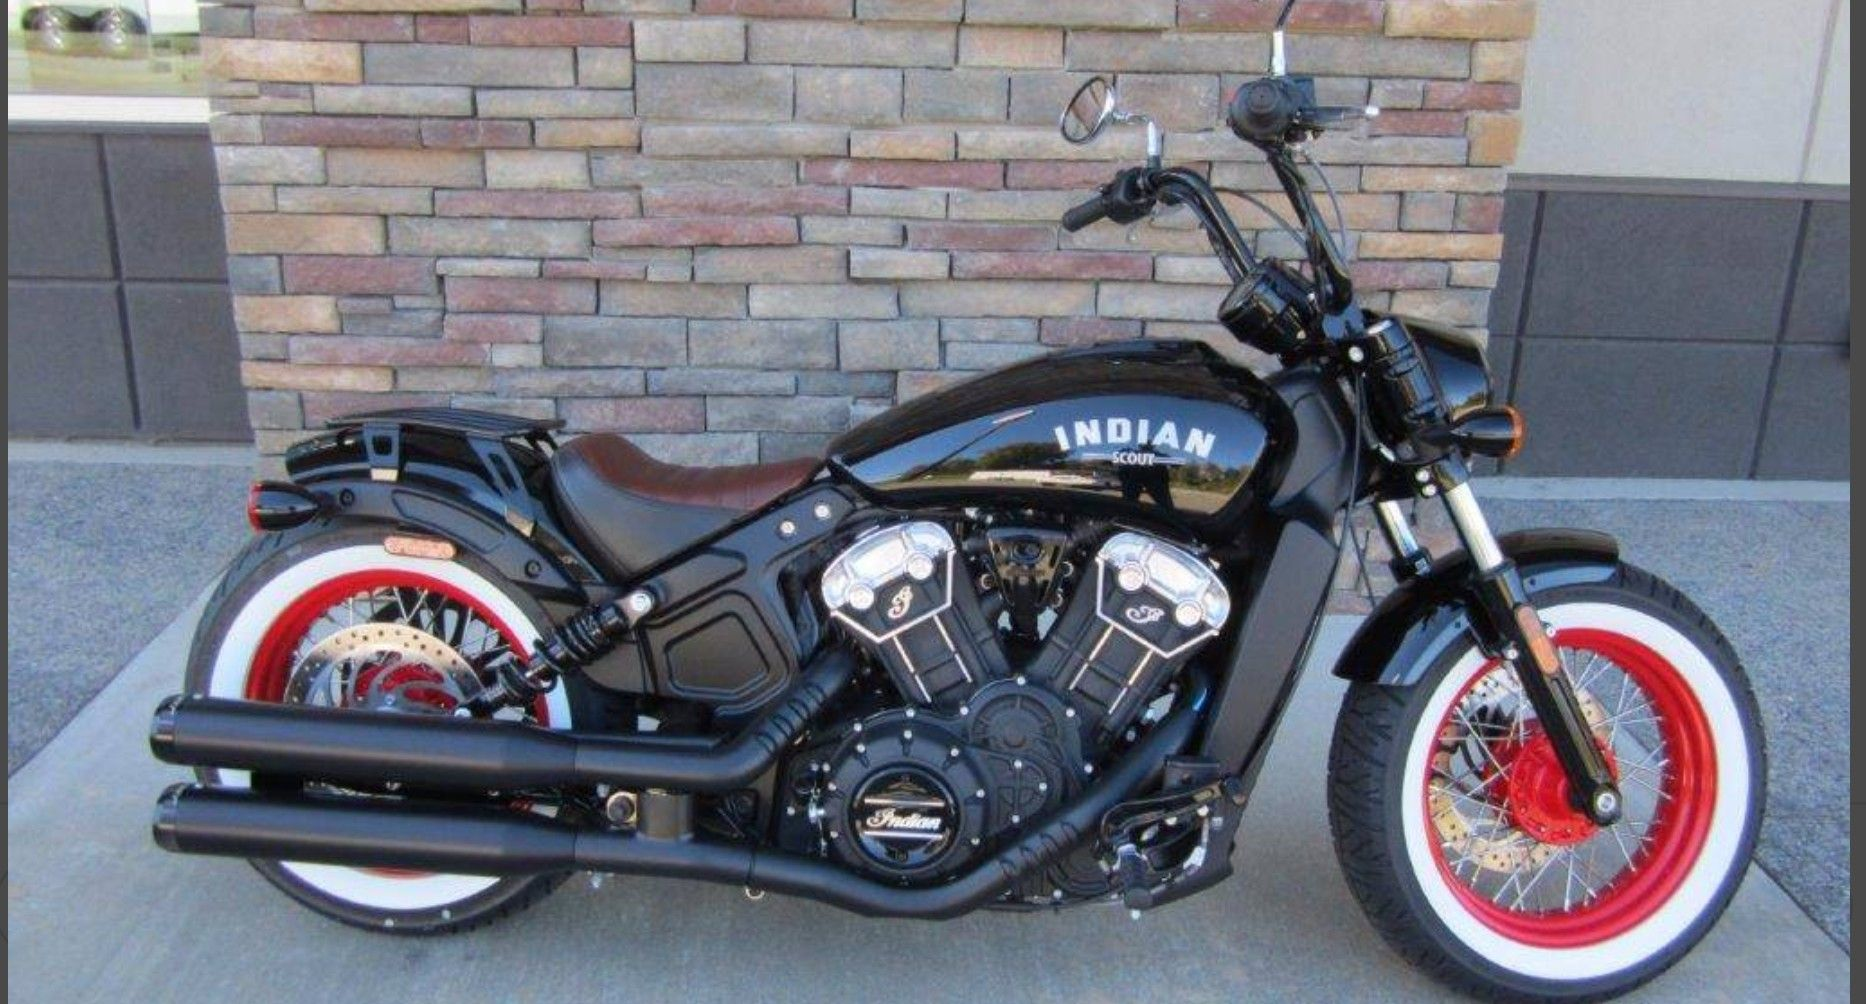 Indian Motorcycle Images